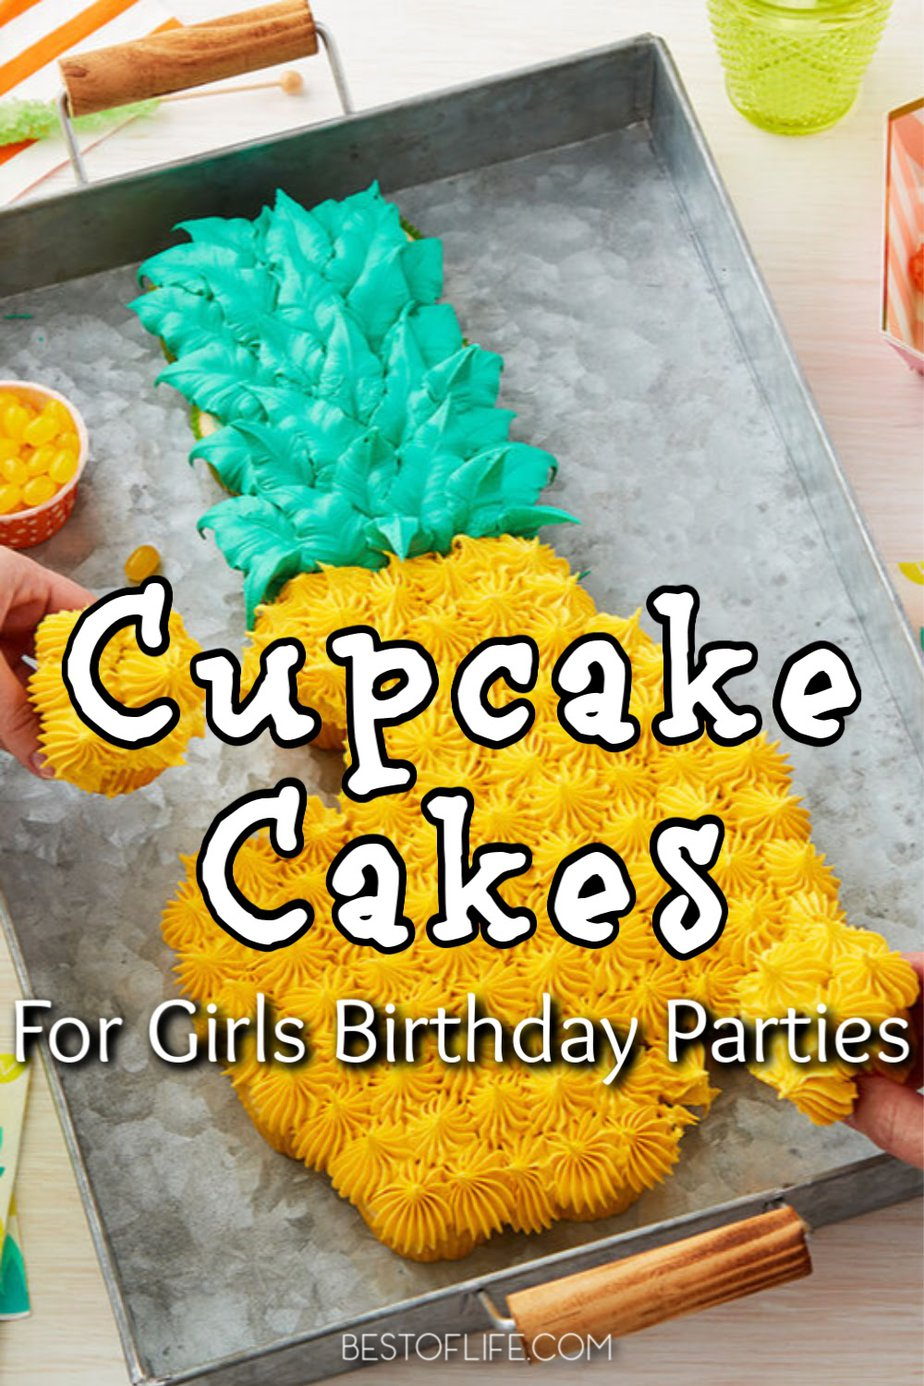 These are some of the best pull-apart cupcake cake ideas for a girl's birthday party that are not only easy party recipes but impressive as well. Birthday Cake Ideas for Girls | Teen Birthday Party Ideas | Party Food Ideas | Cupcake Cakes | Cupcake Cake Decorating | Cake Recipes for Girls | Birthday Cake for Girls Kids | Recipes for Birthday Parties #cupcakecake #birthday